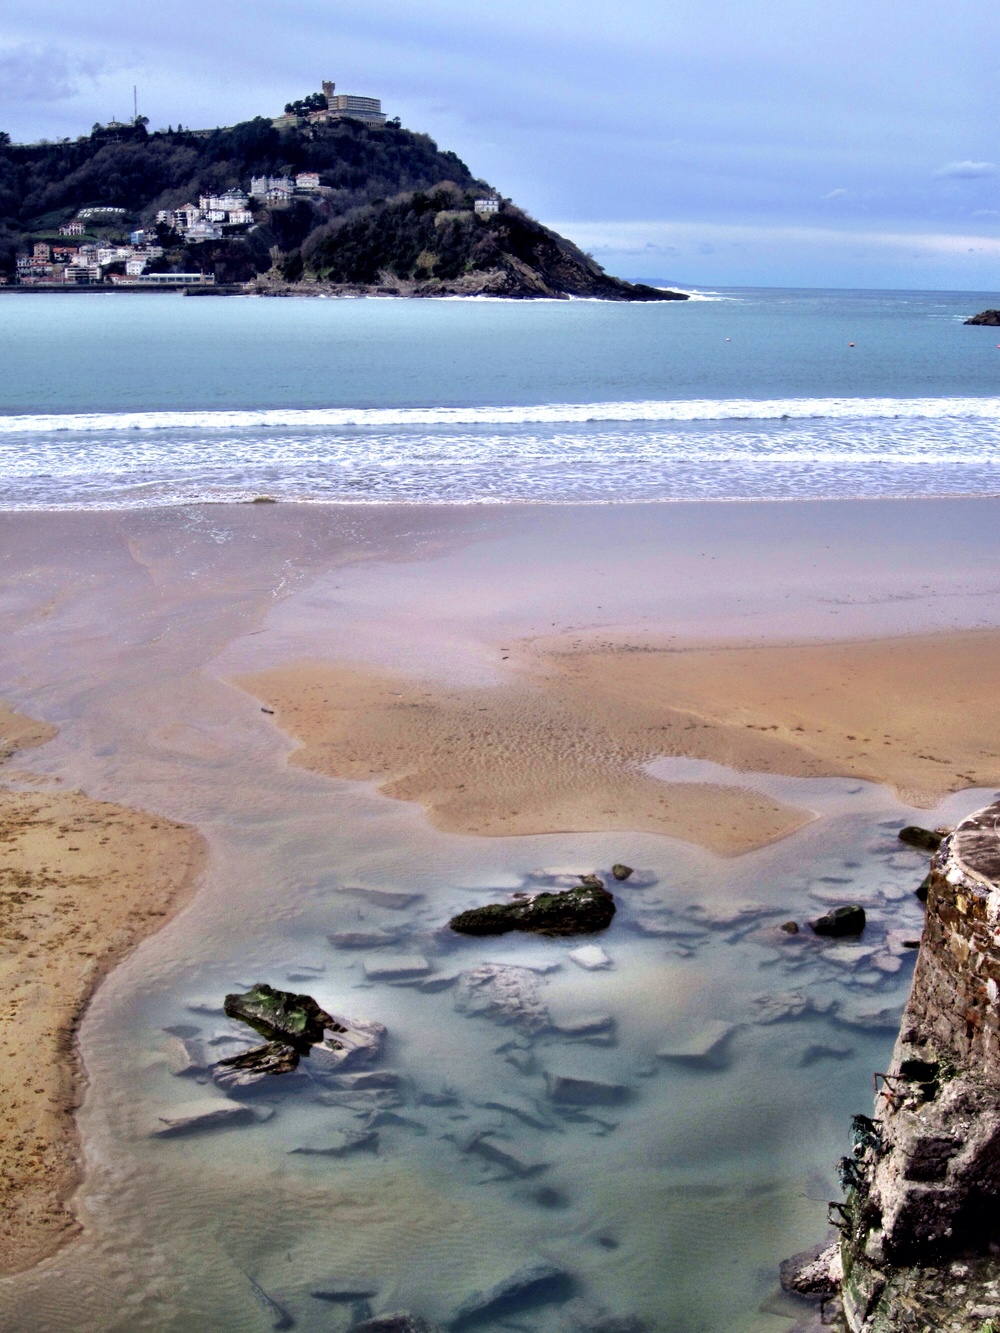 The beach at San Sebastián